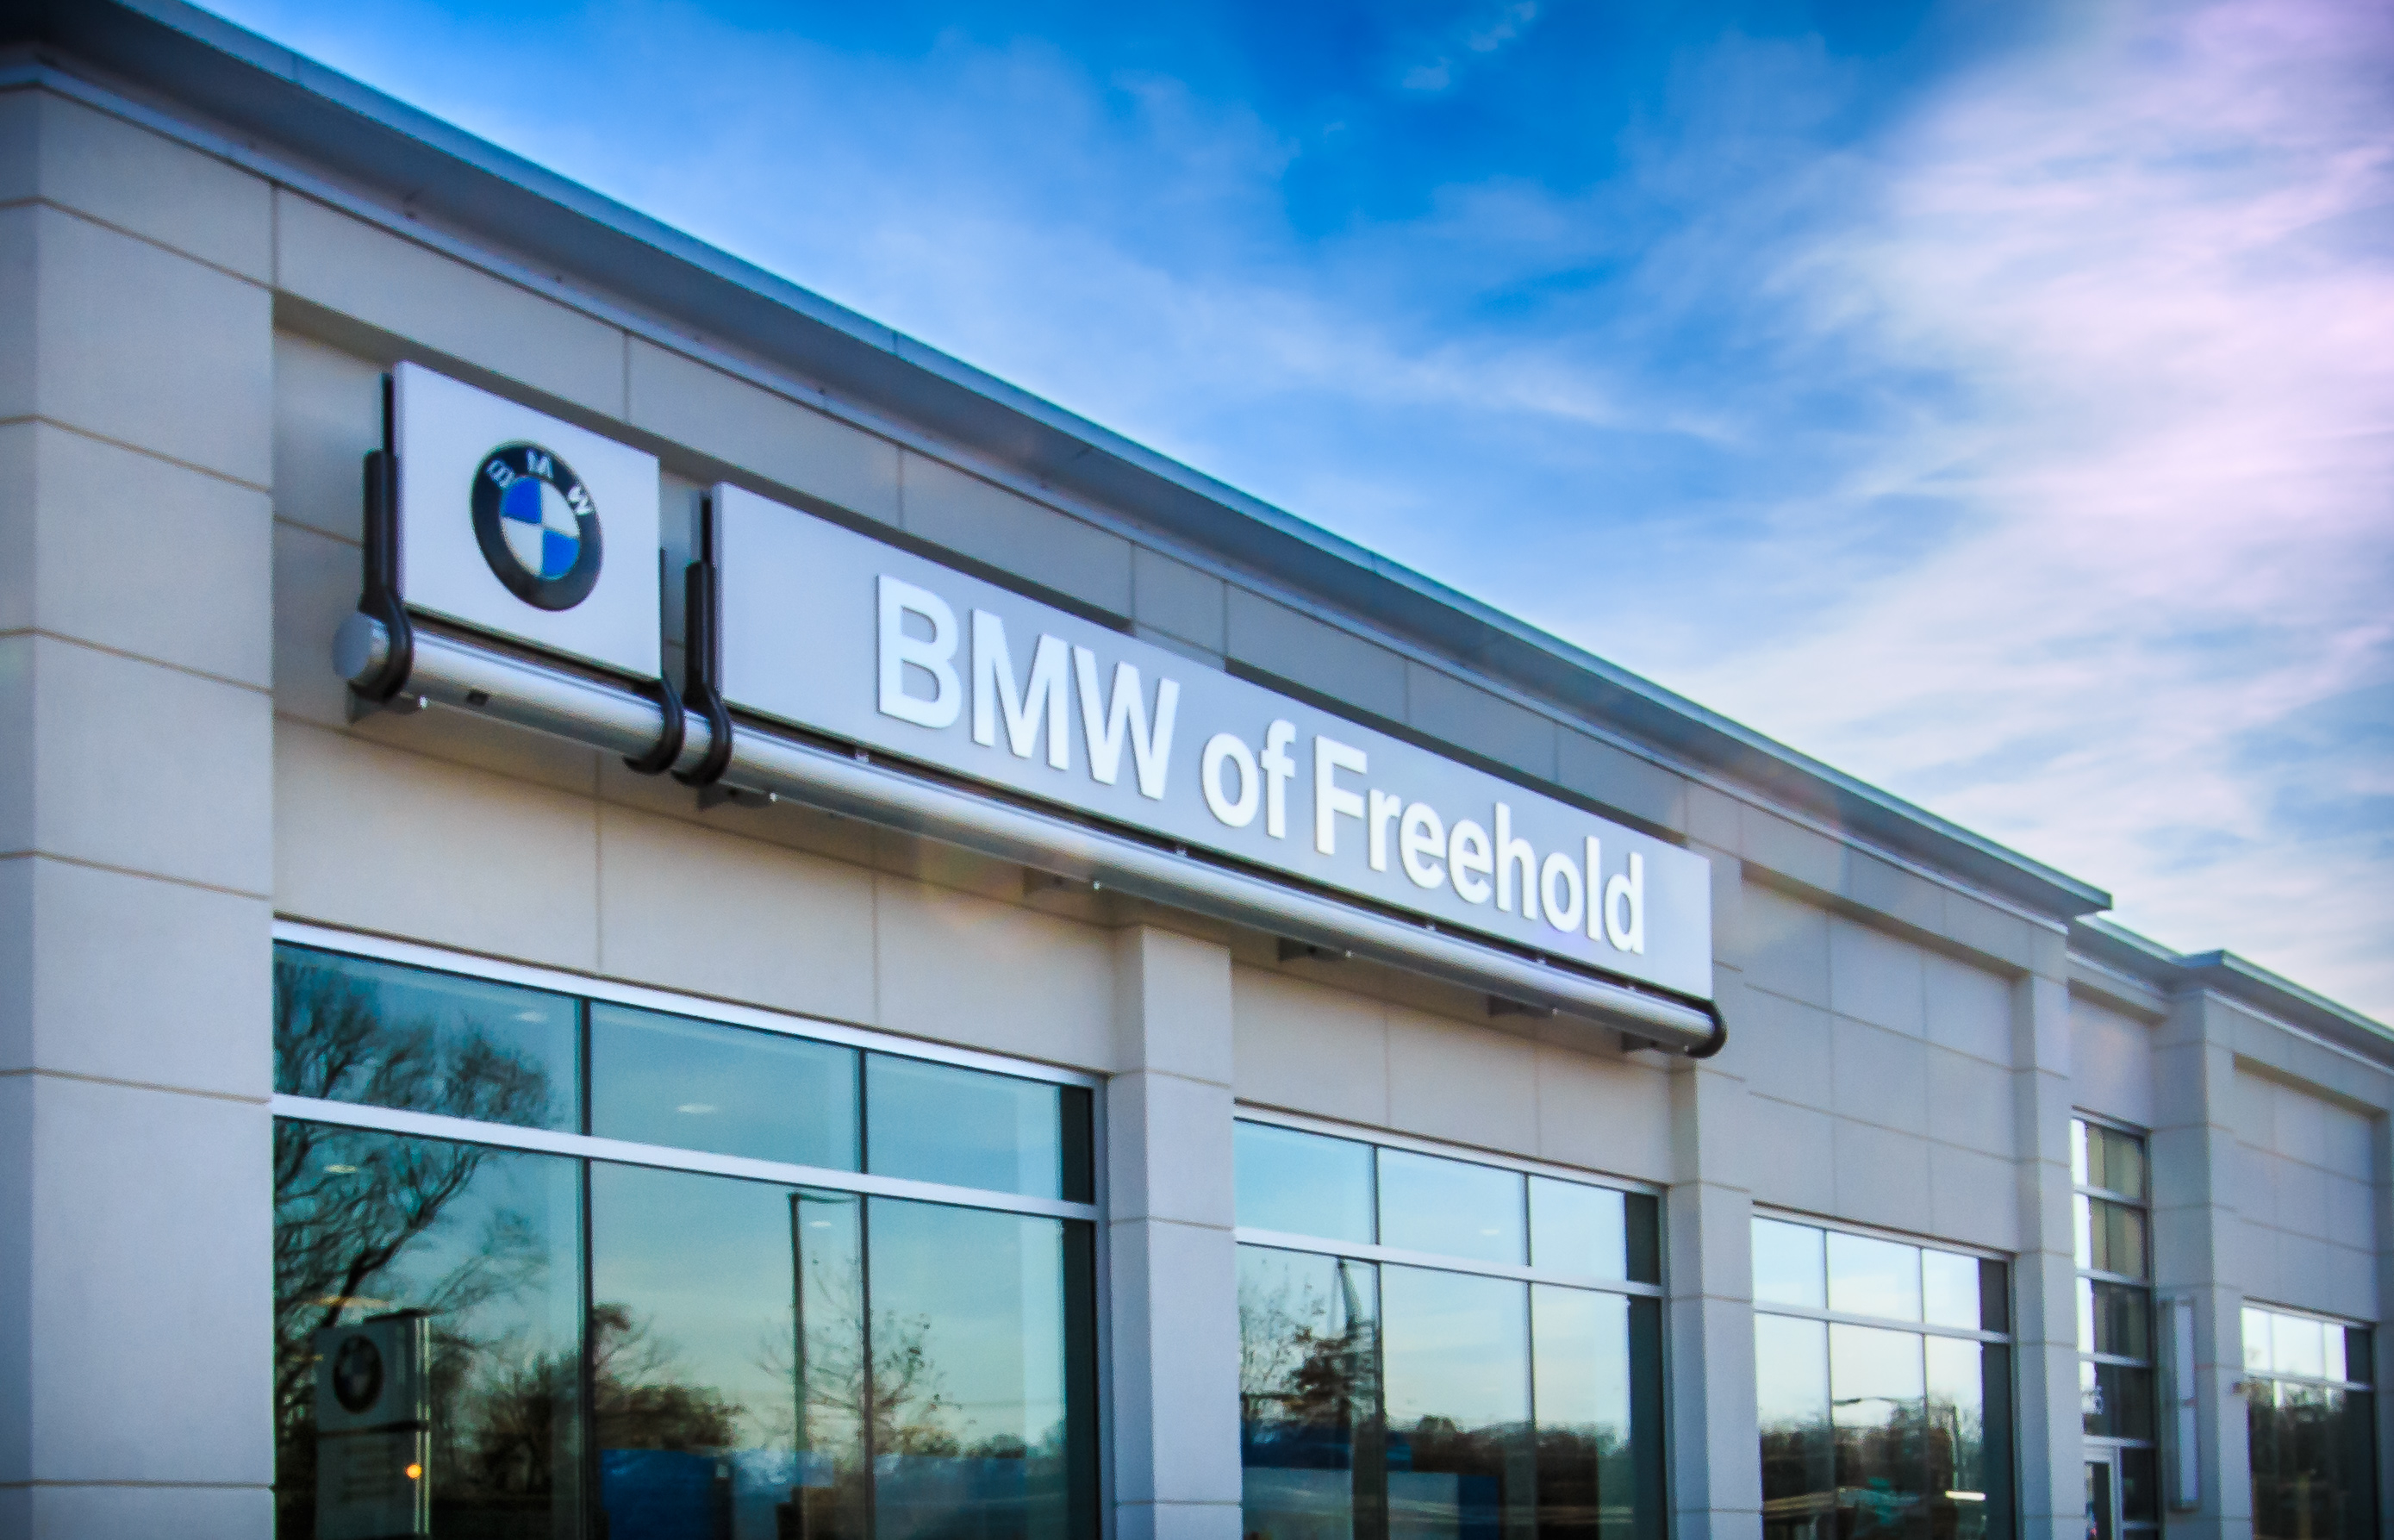 Bmw Of Freehold Bmw Service Center Upcomingcarshq Com